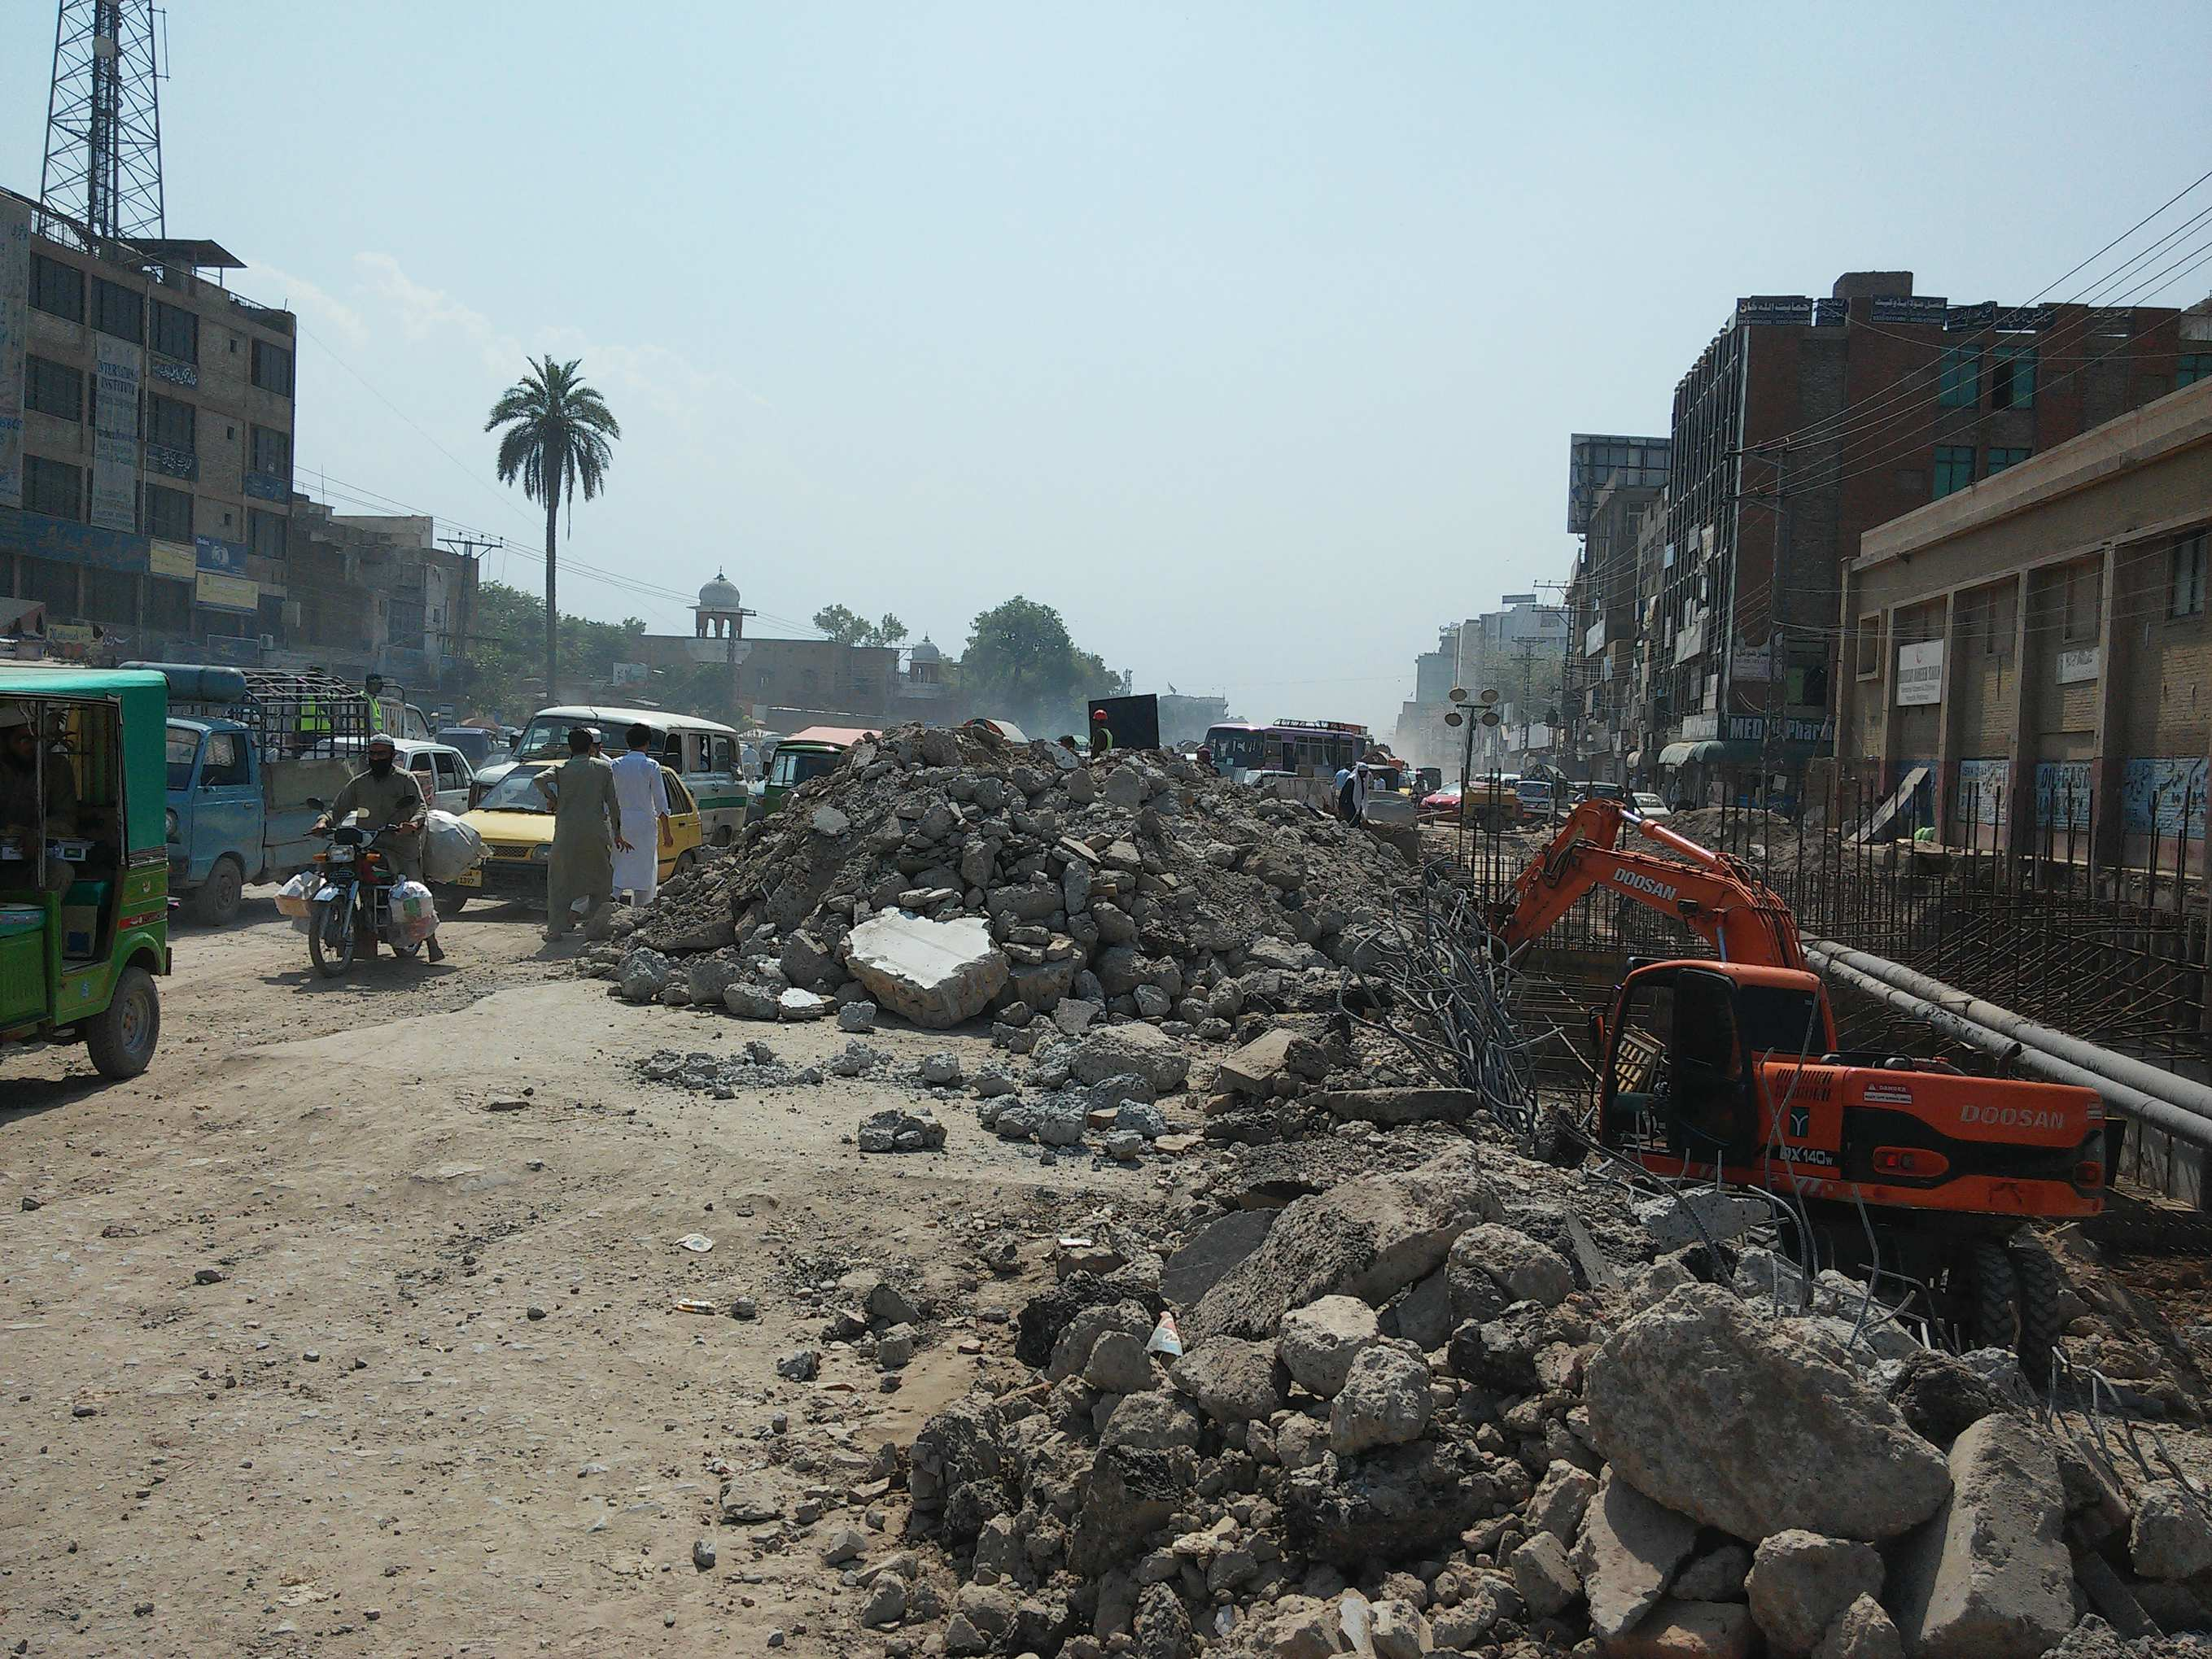 Motorist traveling along a poorly maintained road, exposed to building rubble, construction materials and machinery.